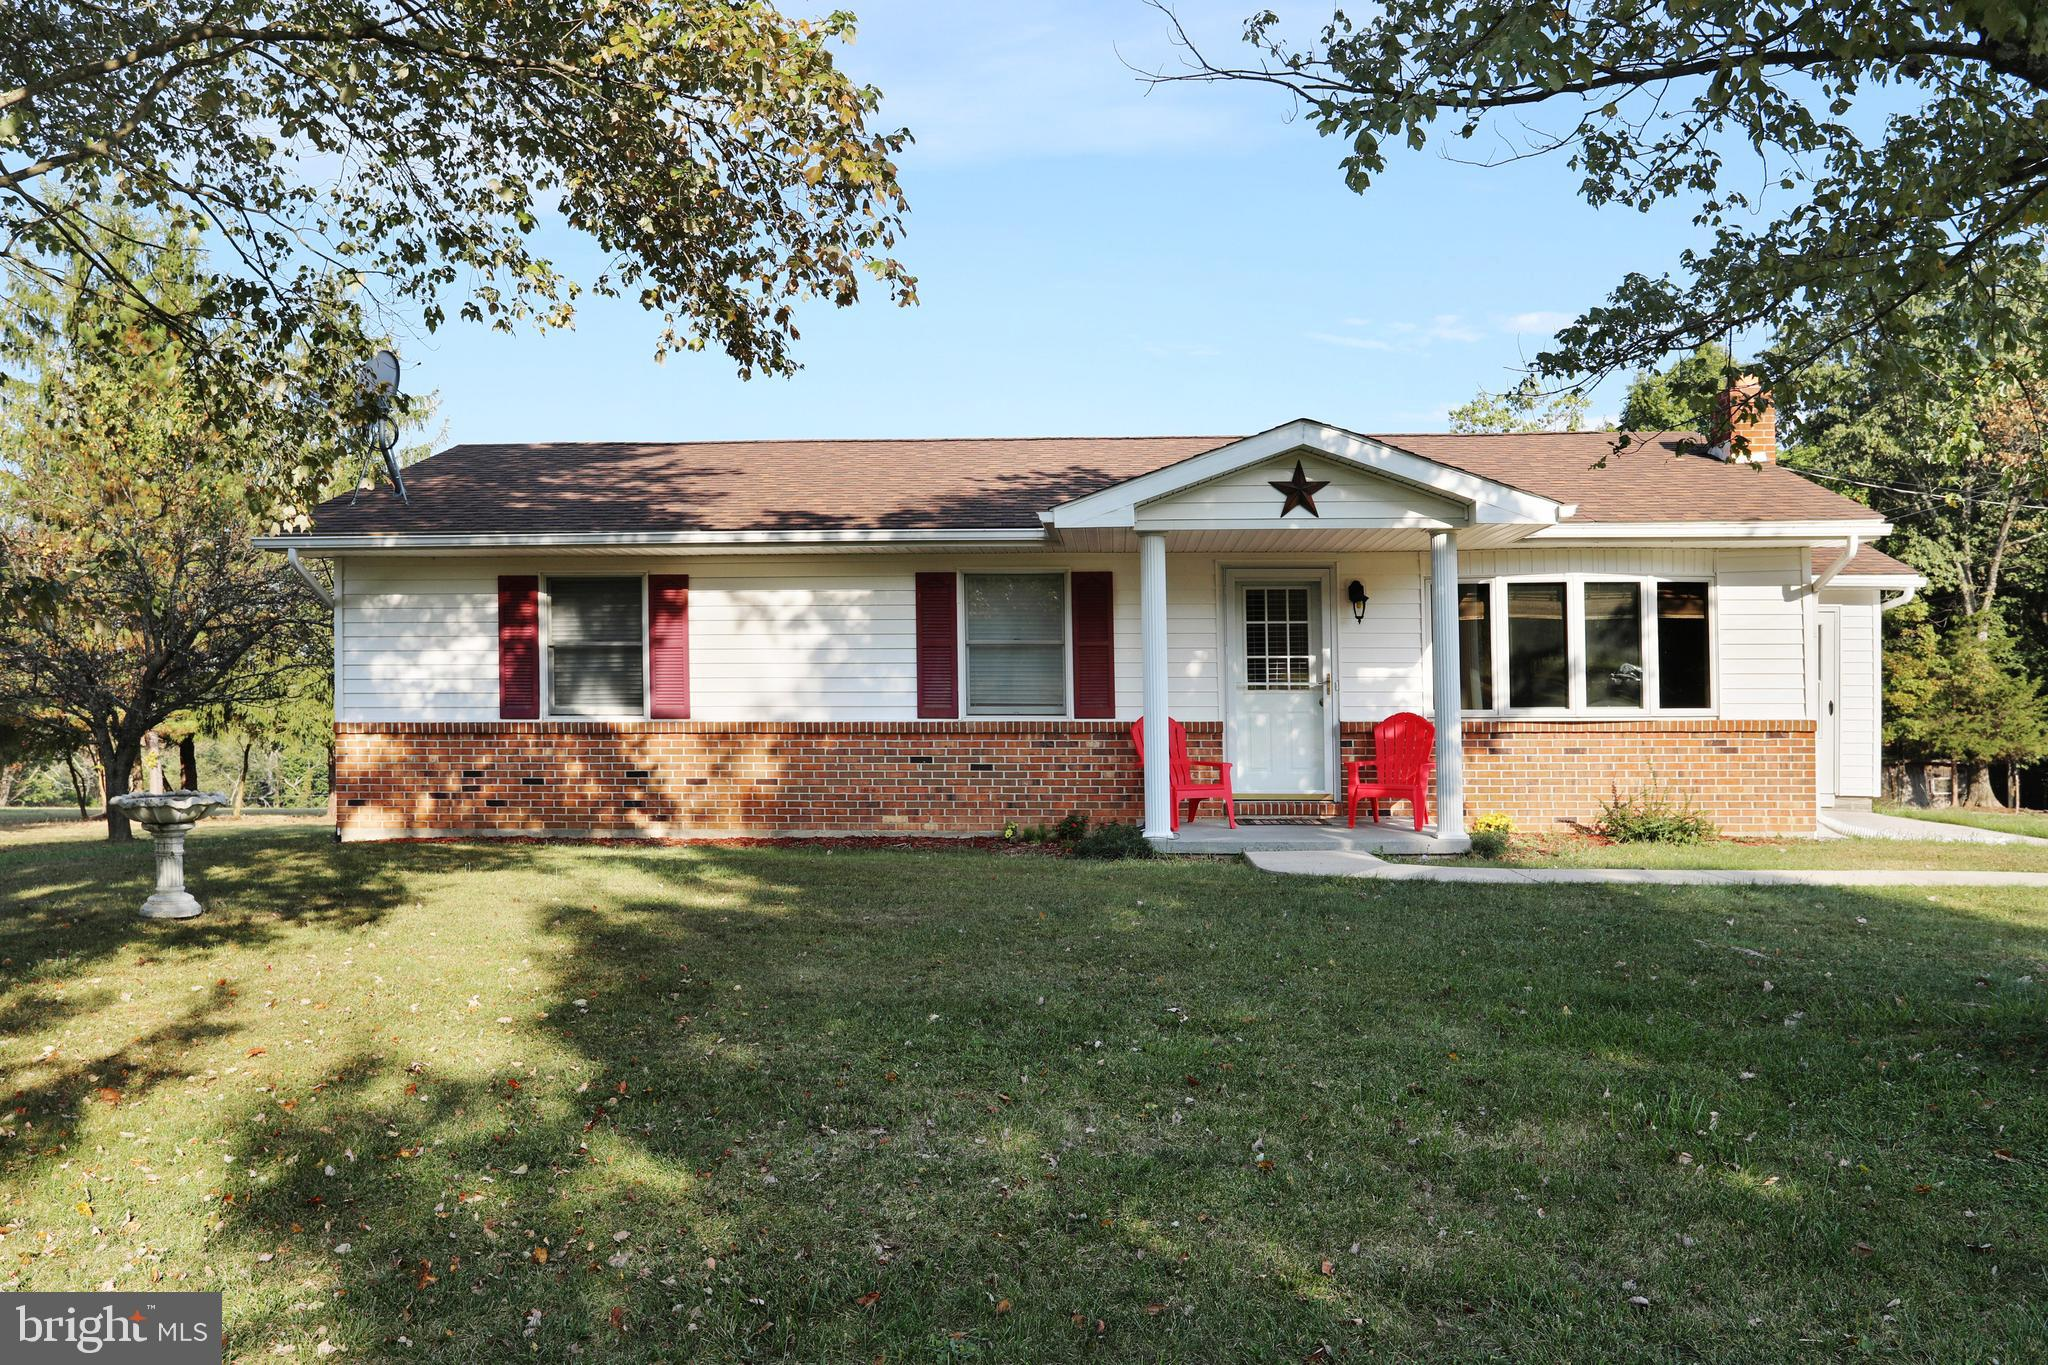 817 TIMBER MOUNTAIN ROAD, AUGUSTA, WV 26704